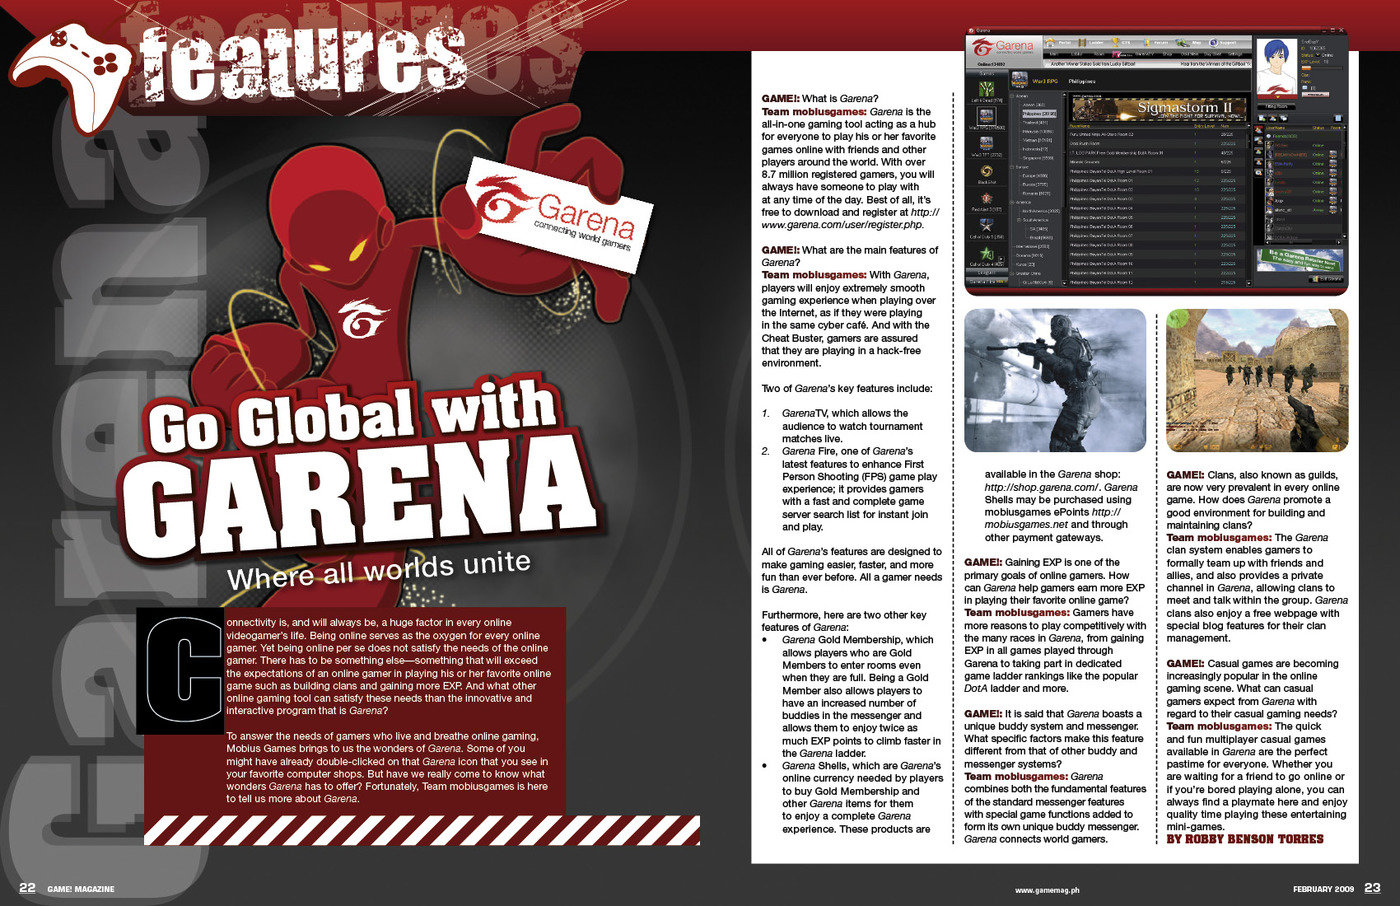 GAME Magazine New Inside Pages by Patrick Milan at Coroflot com